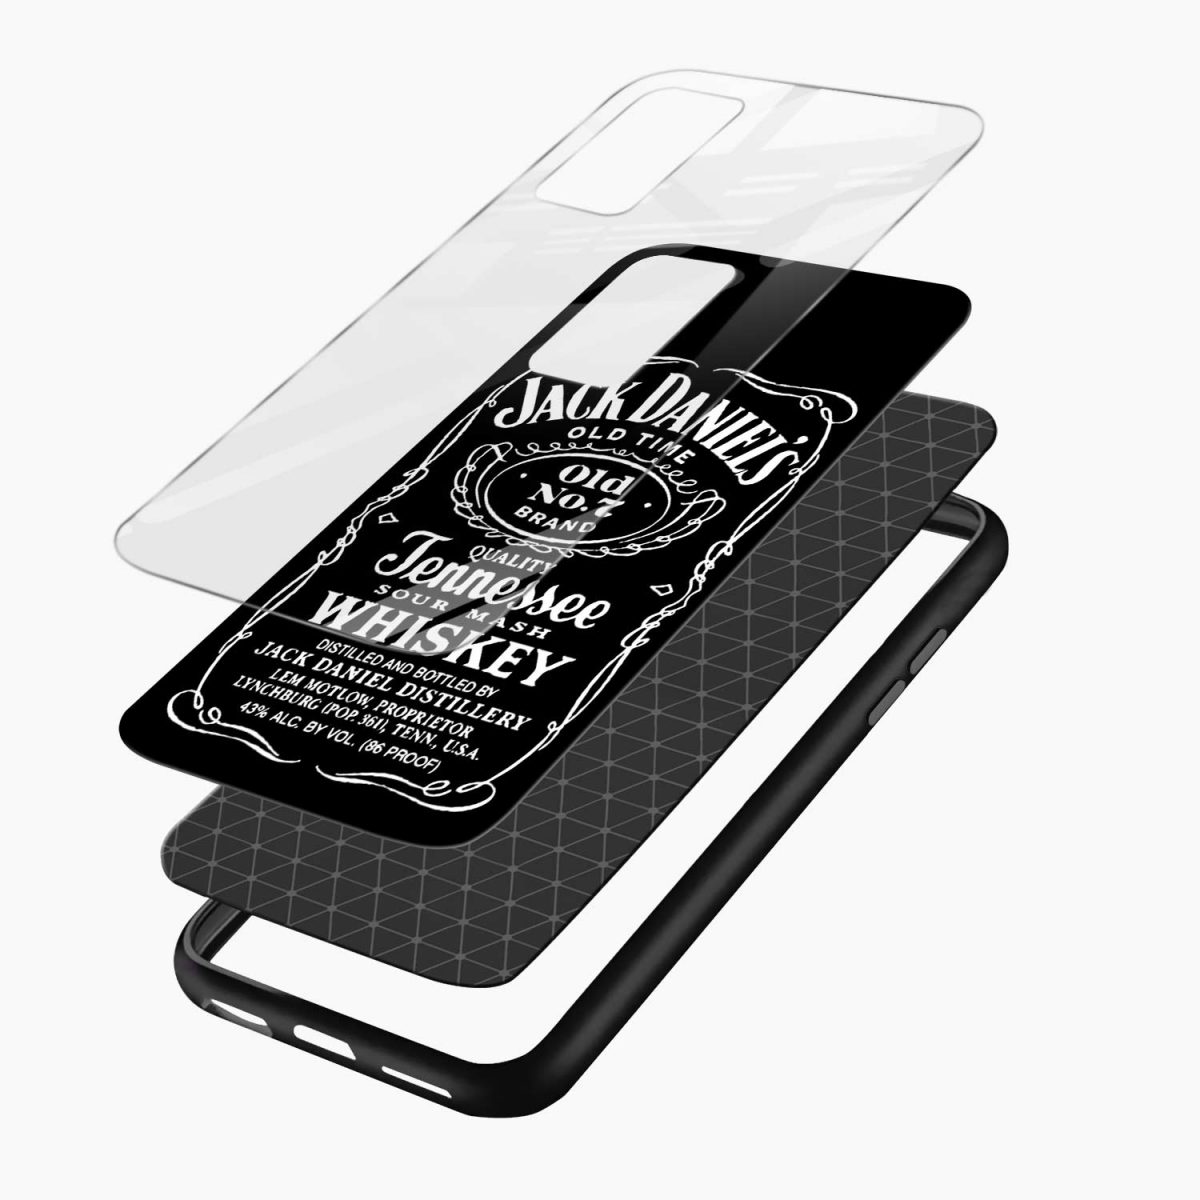 jack daniels whiskey xiaomi mi 10t pro back cover layers view